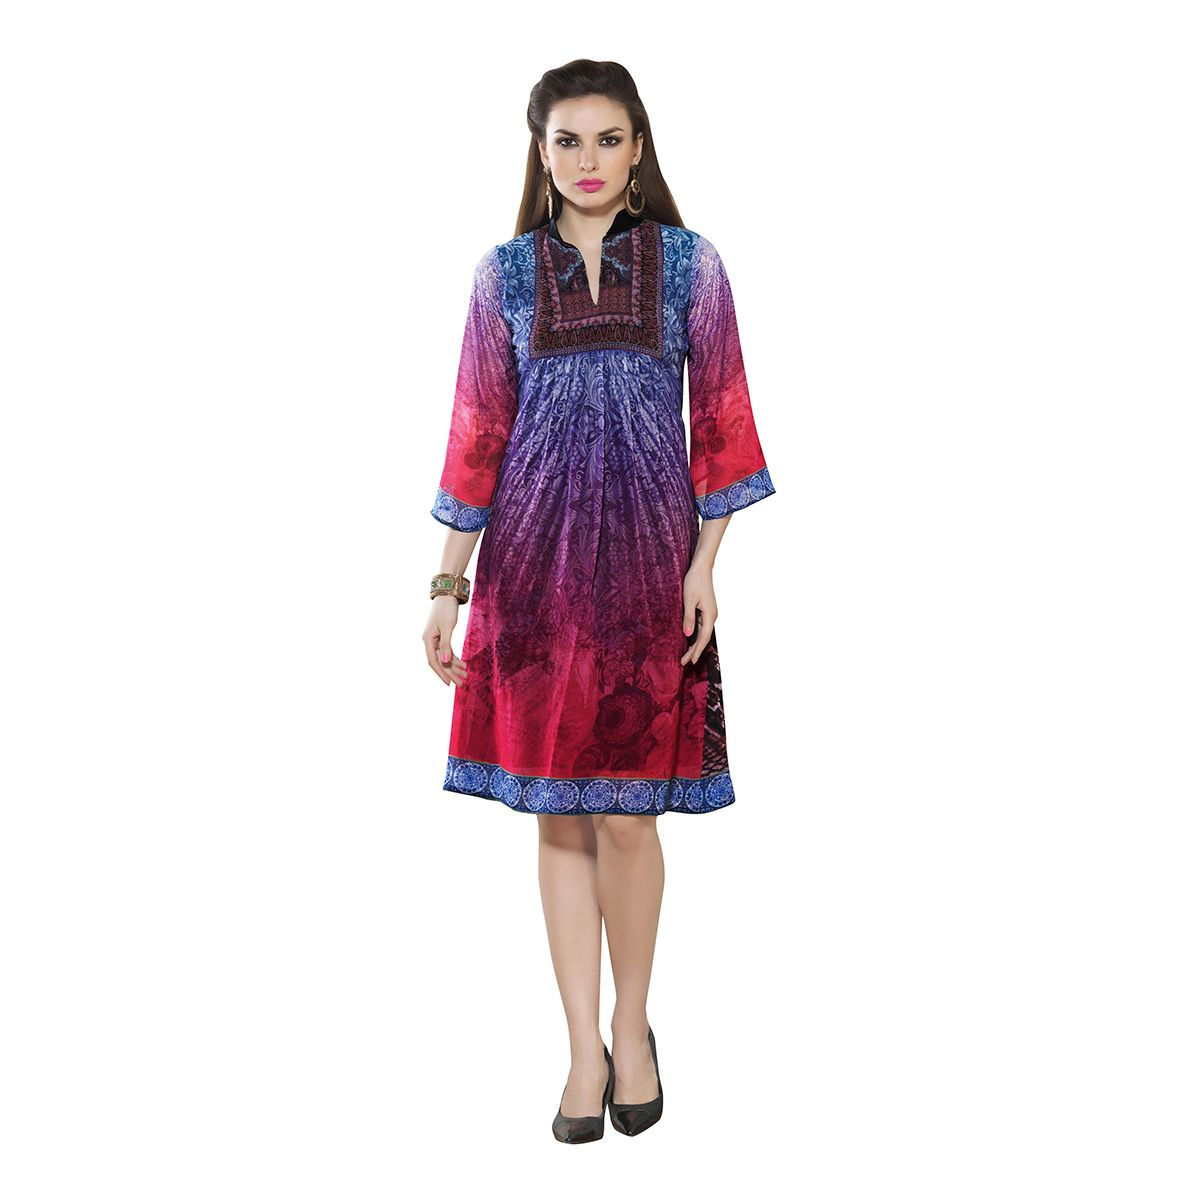 http://www.thatsend.com/shopping/lp/fvp/TESG11142/i/TE22926/iu/xl-pink-georgette-kurti  Xl Pink Georgette Kurti Apparel Pattern Printed. Style Casual. Occasion Casual. Work Print. Top Color PINK. Top Fabric Georgette.